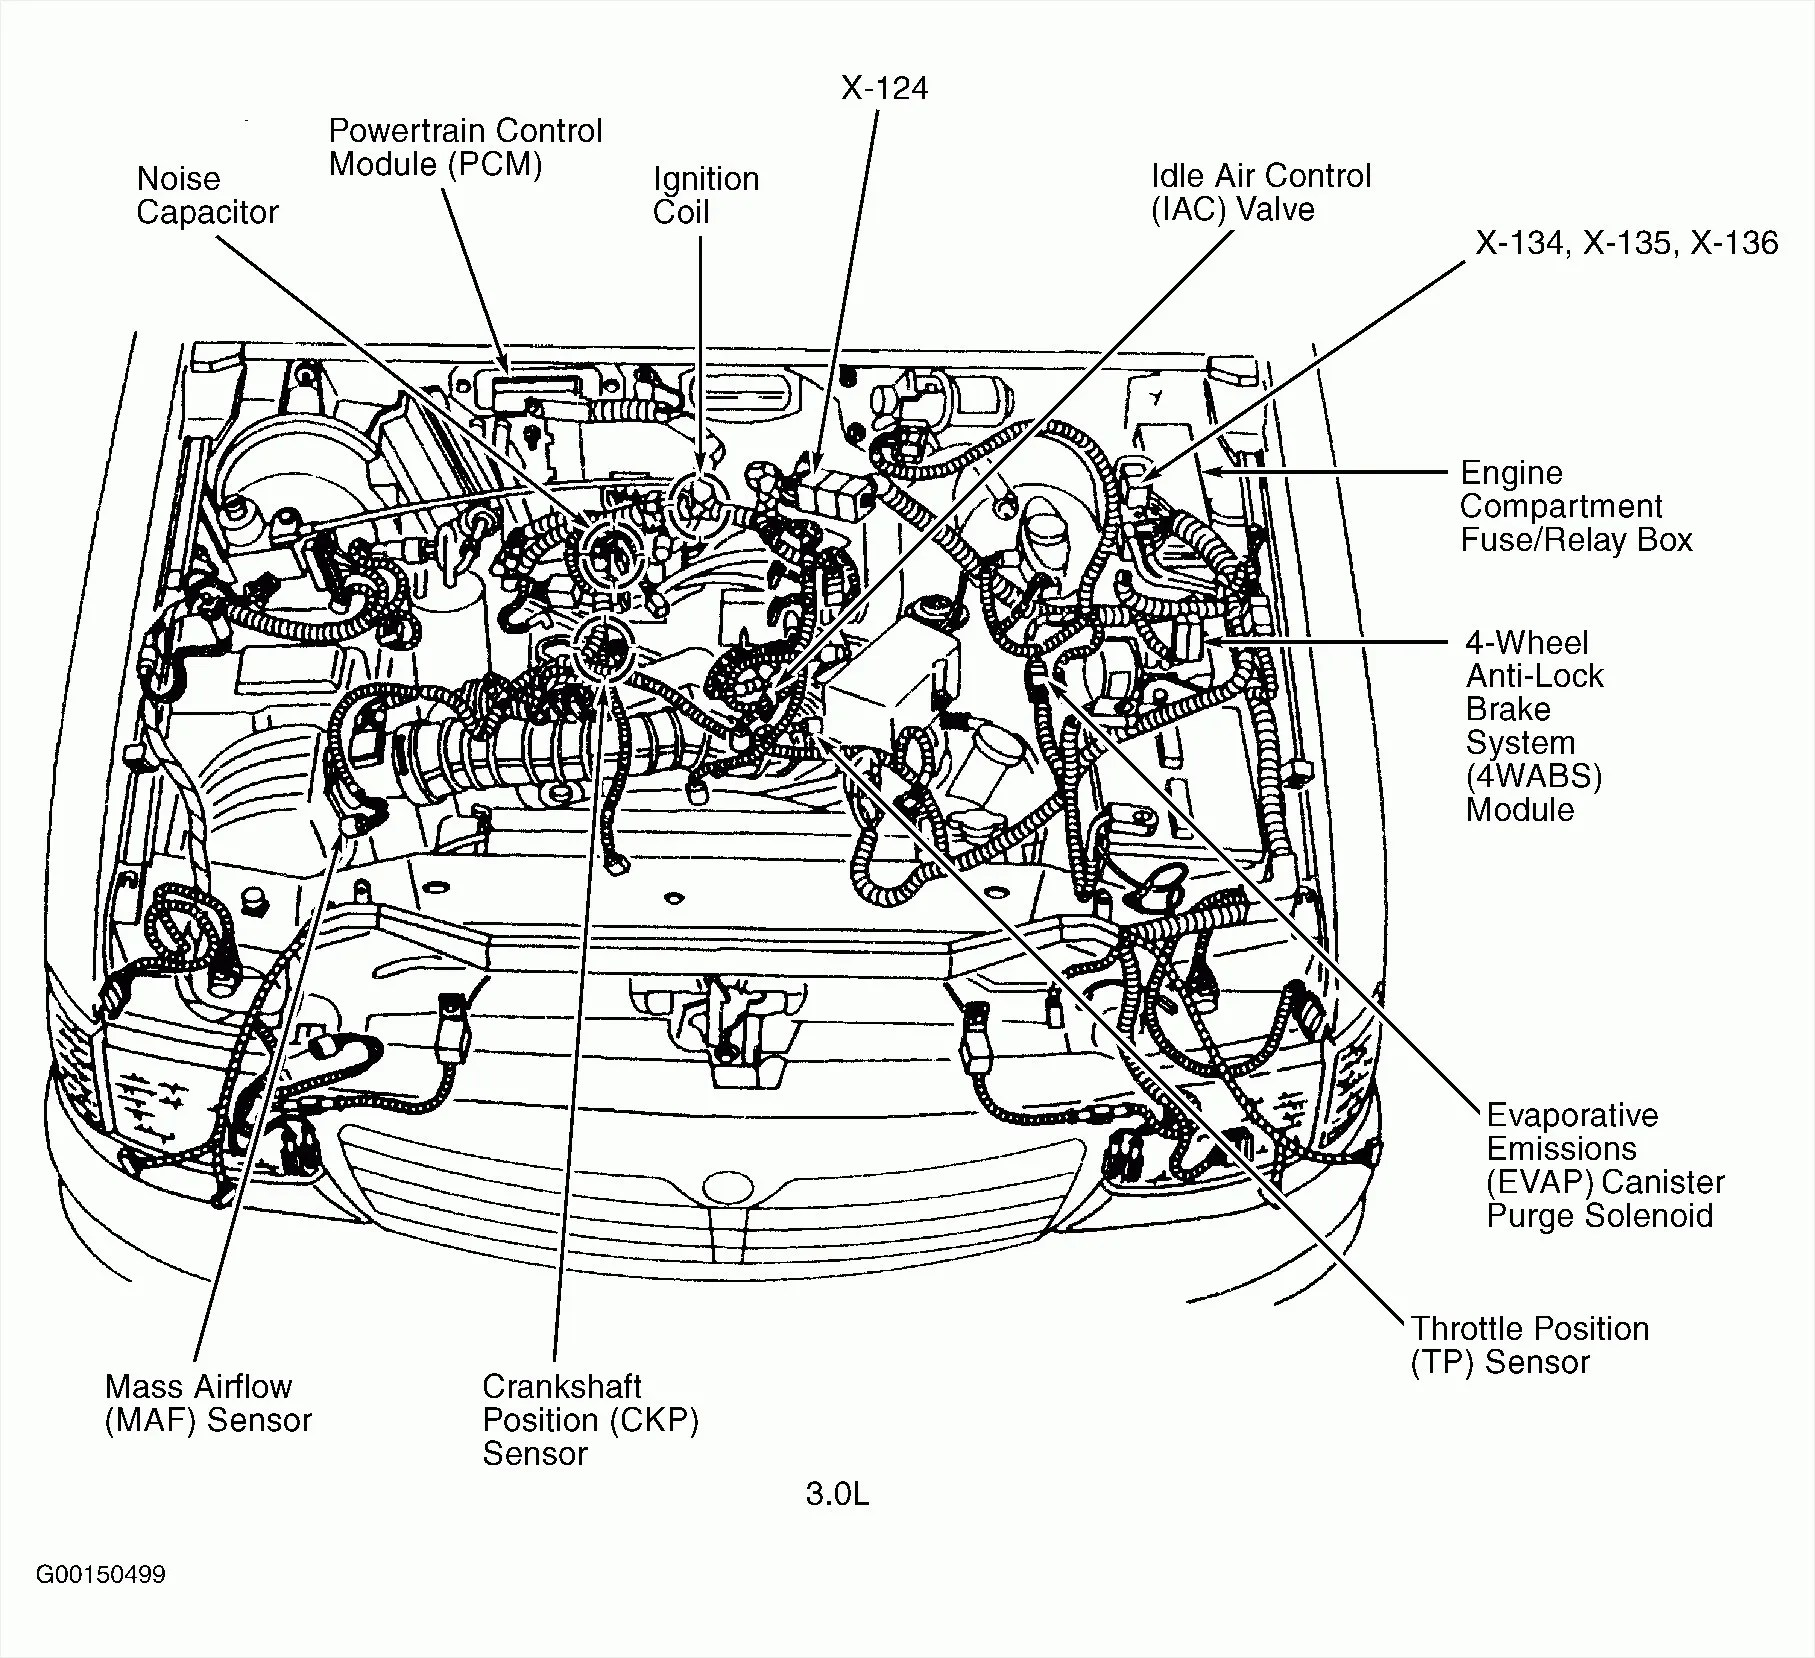 hight resolution of 2006 toyota rav4 engine diagram wiring diagram img 2006 toyota rav4 engine diagram wiring diagram view